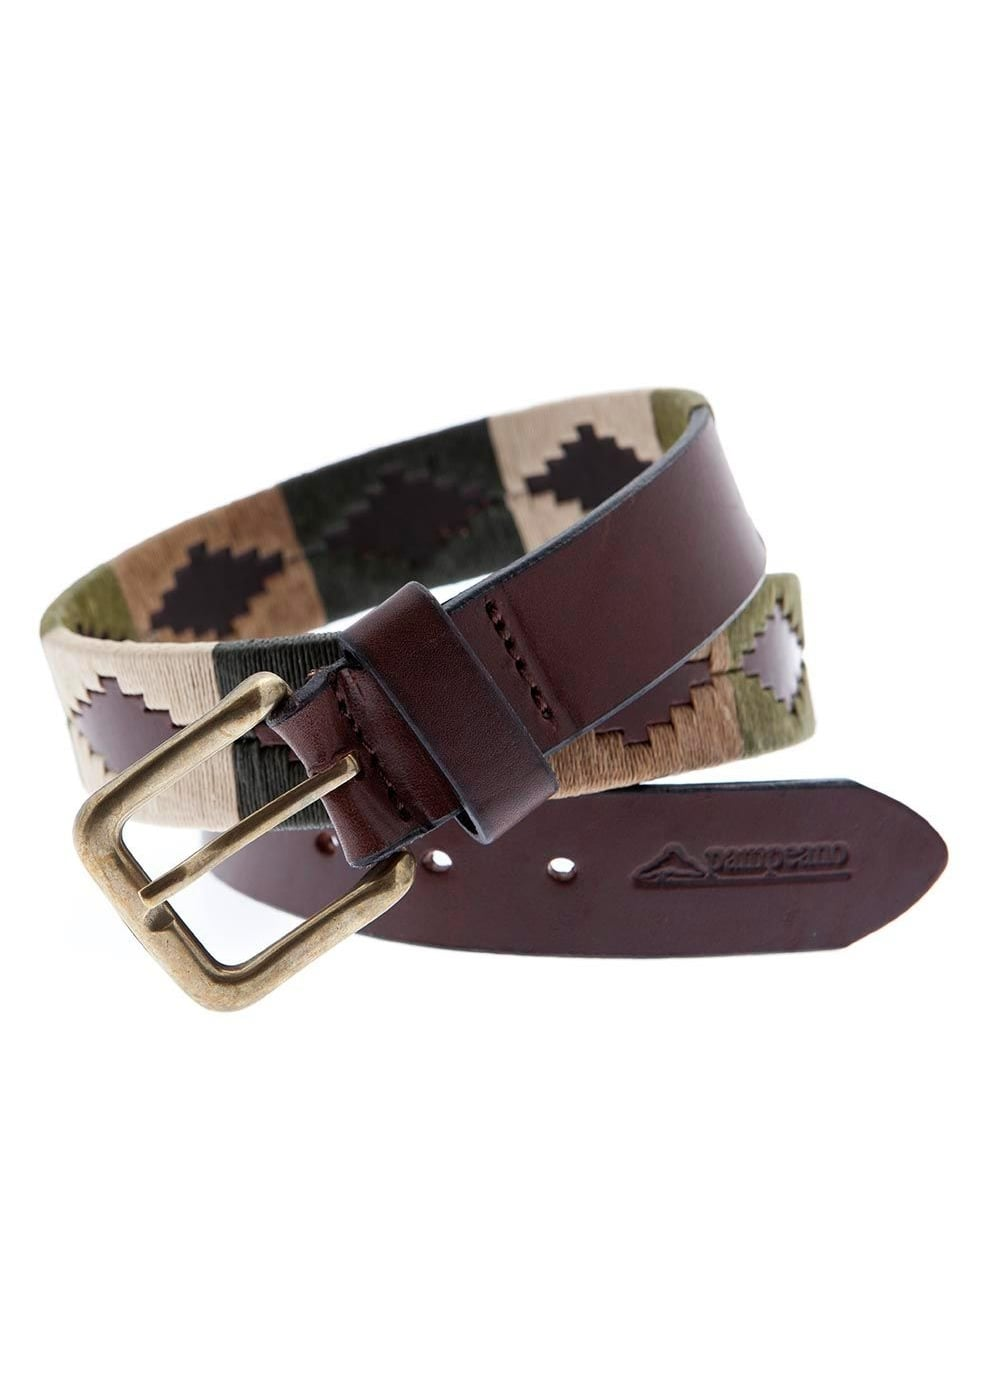 Pampeano Valiente Lowres 1.5 Polo Belt  Large Image